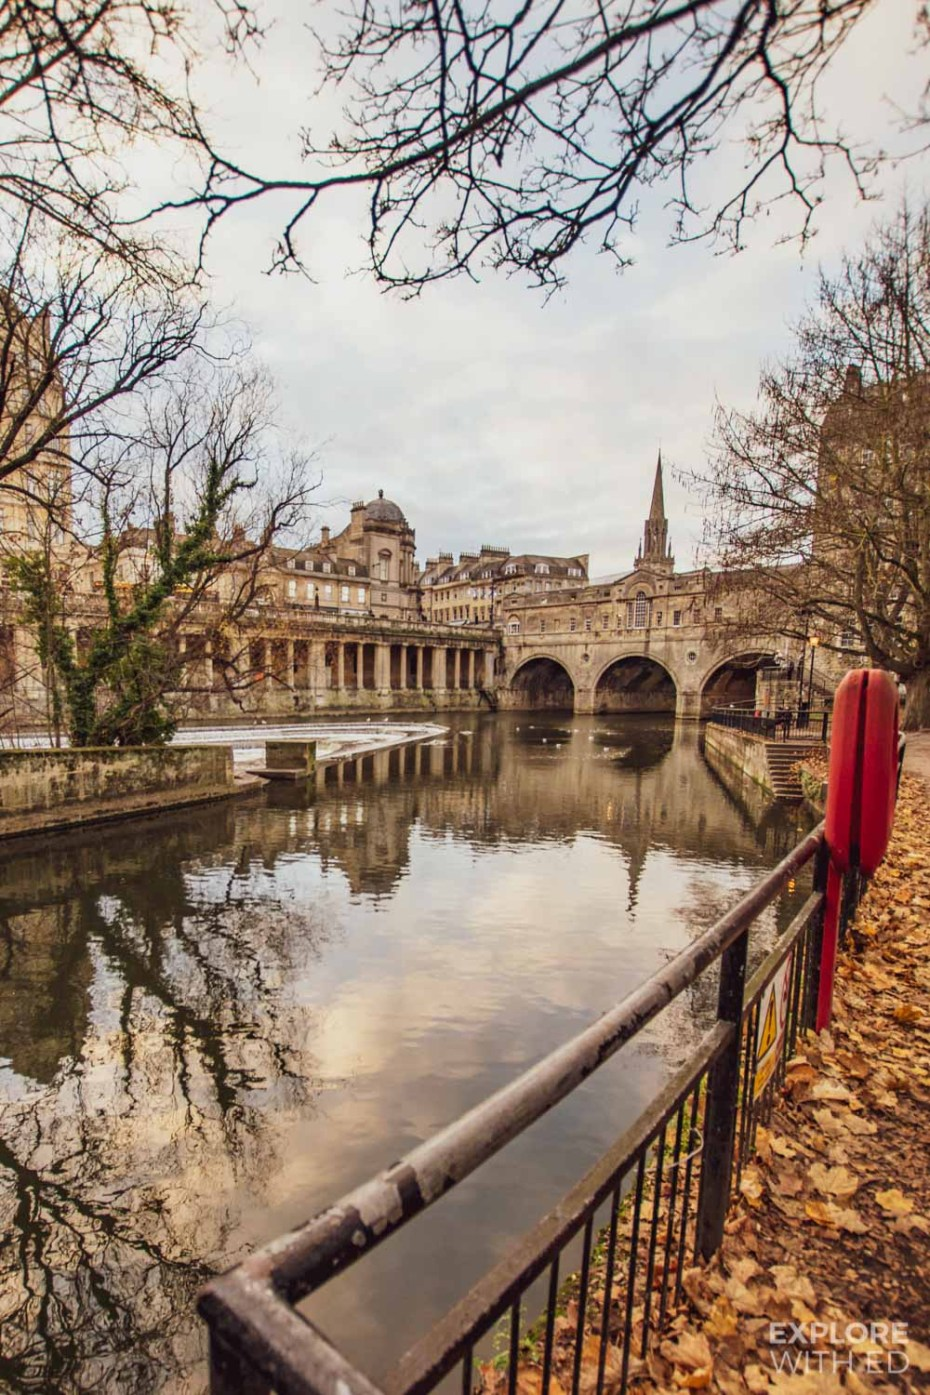 Pulteney Bridge, one of the most popular photo spots in Bath